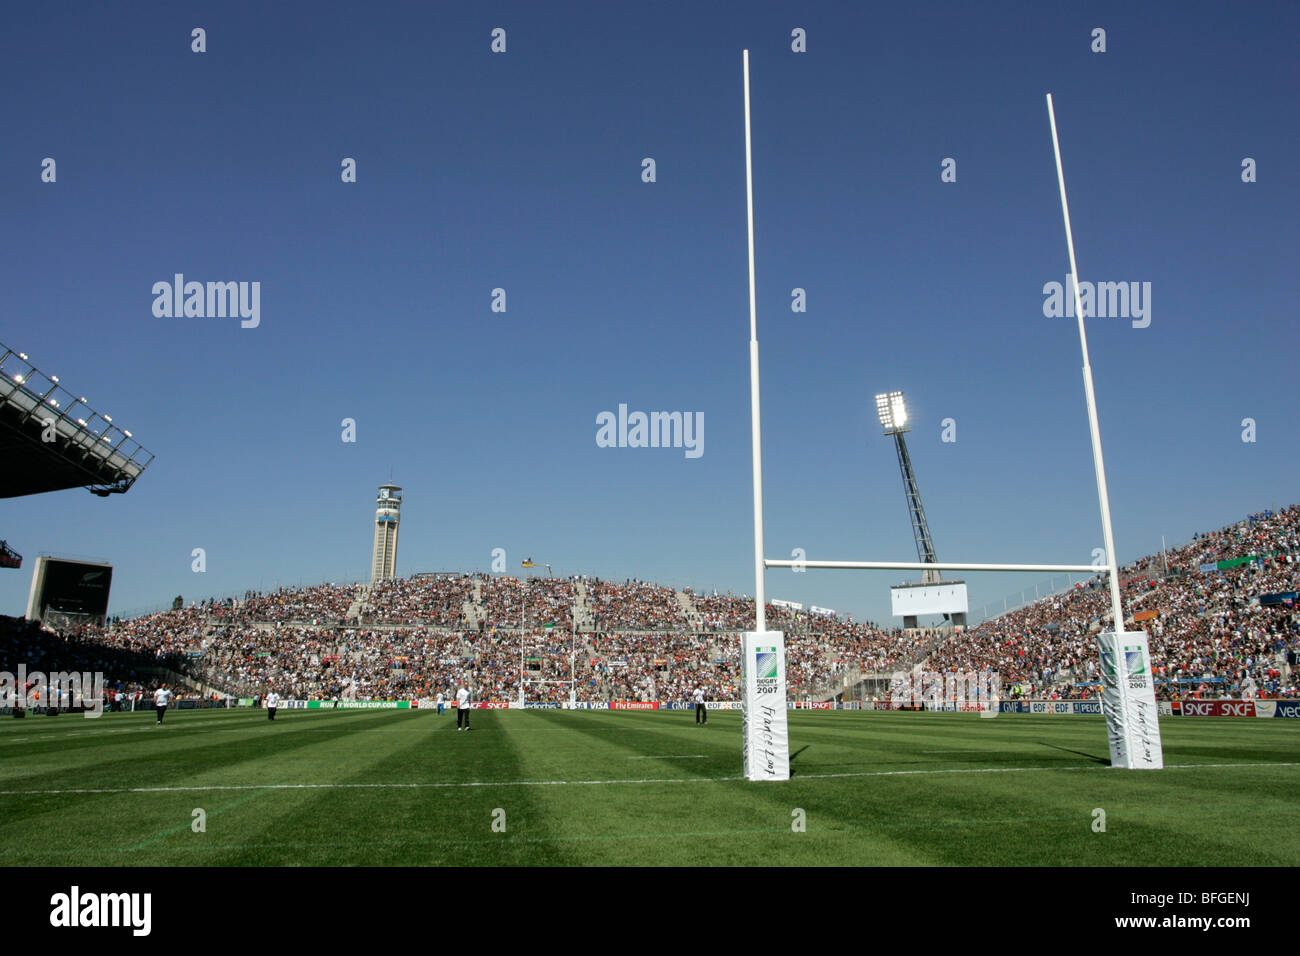 The Stade Velodrome stadium in Marseille, France - Stock Image